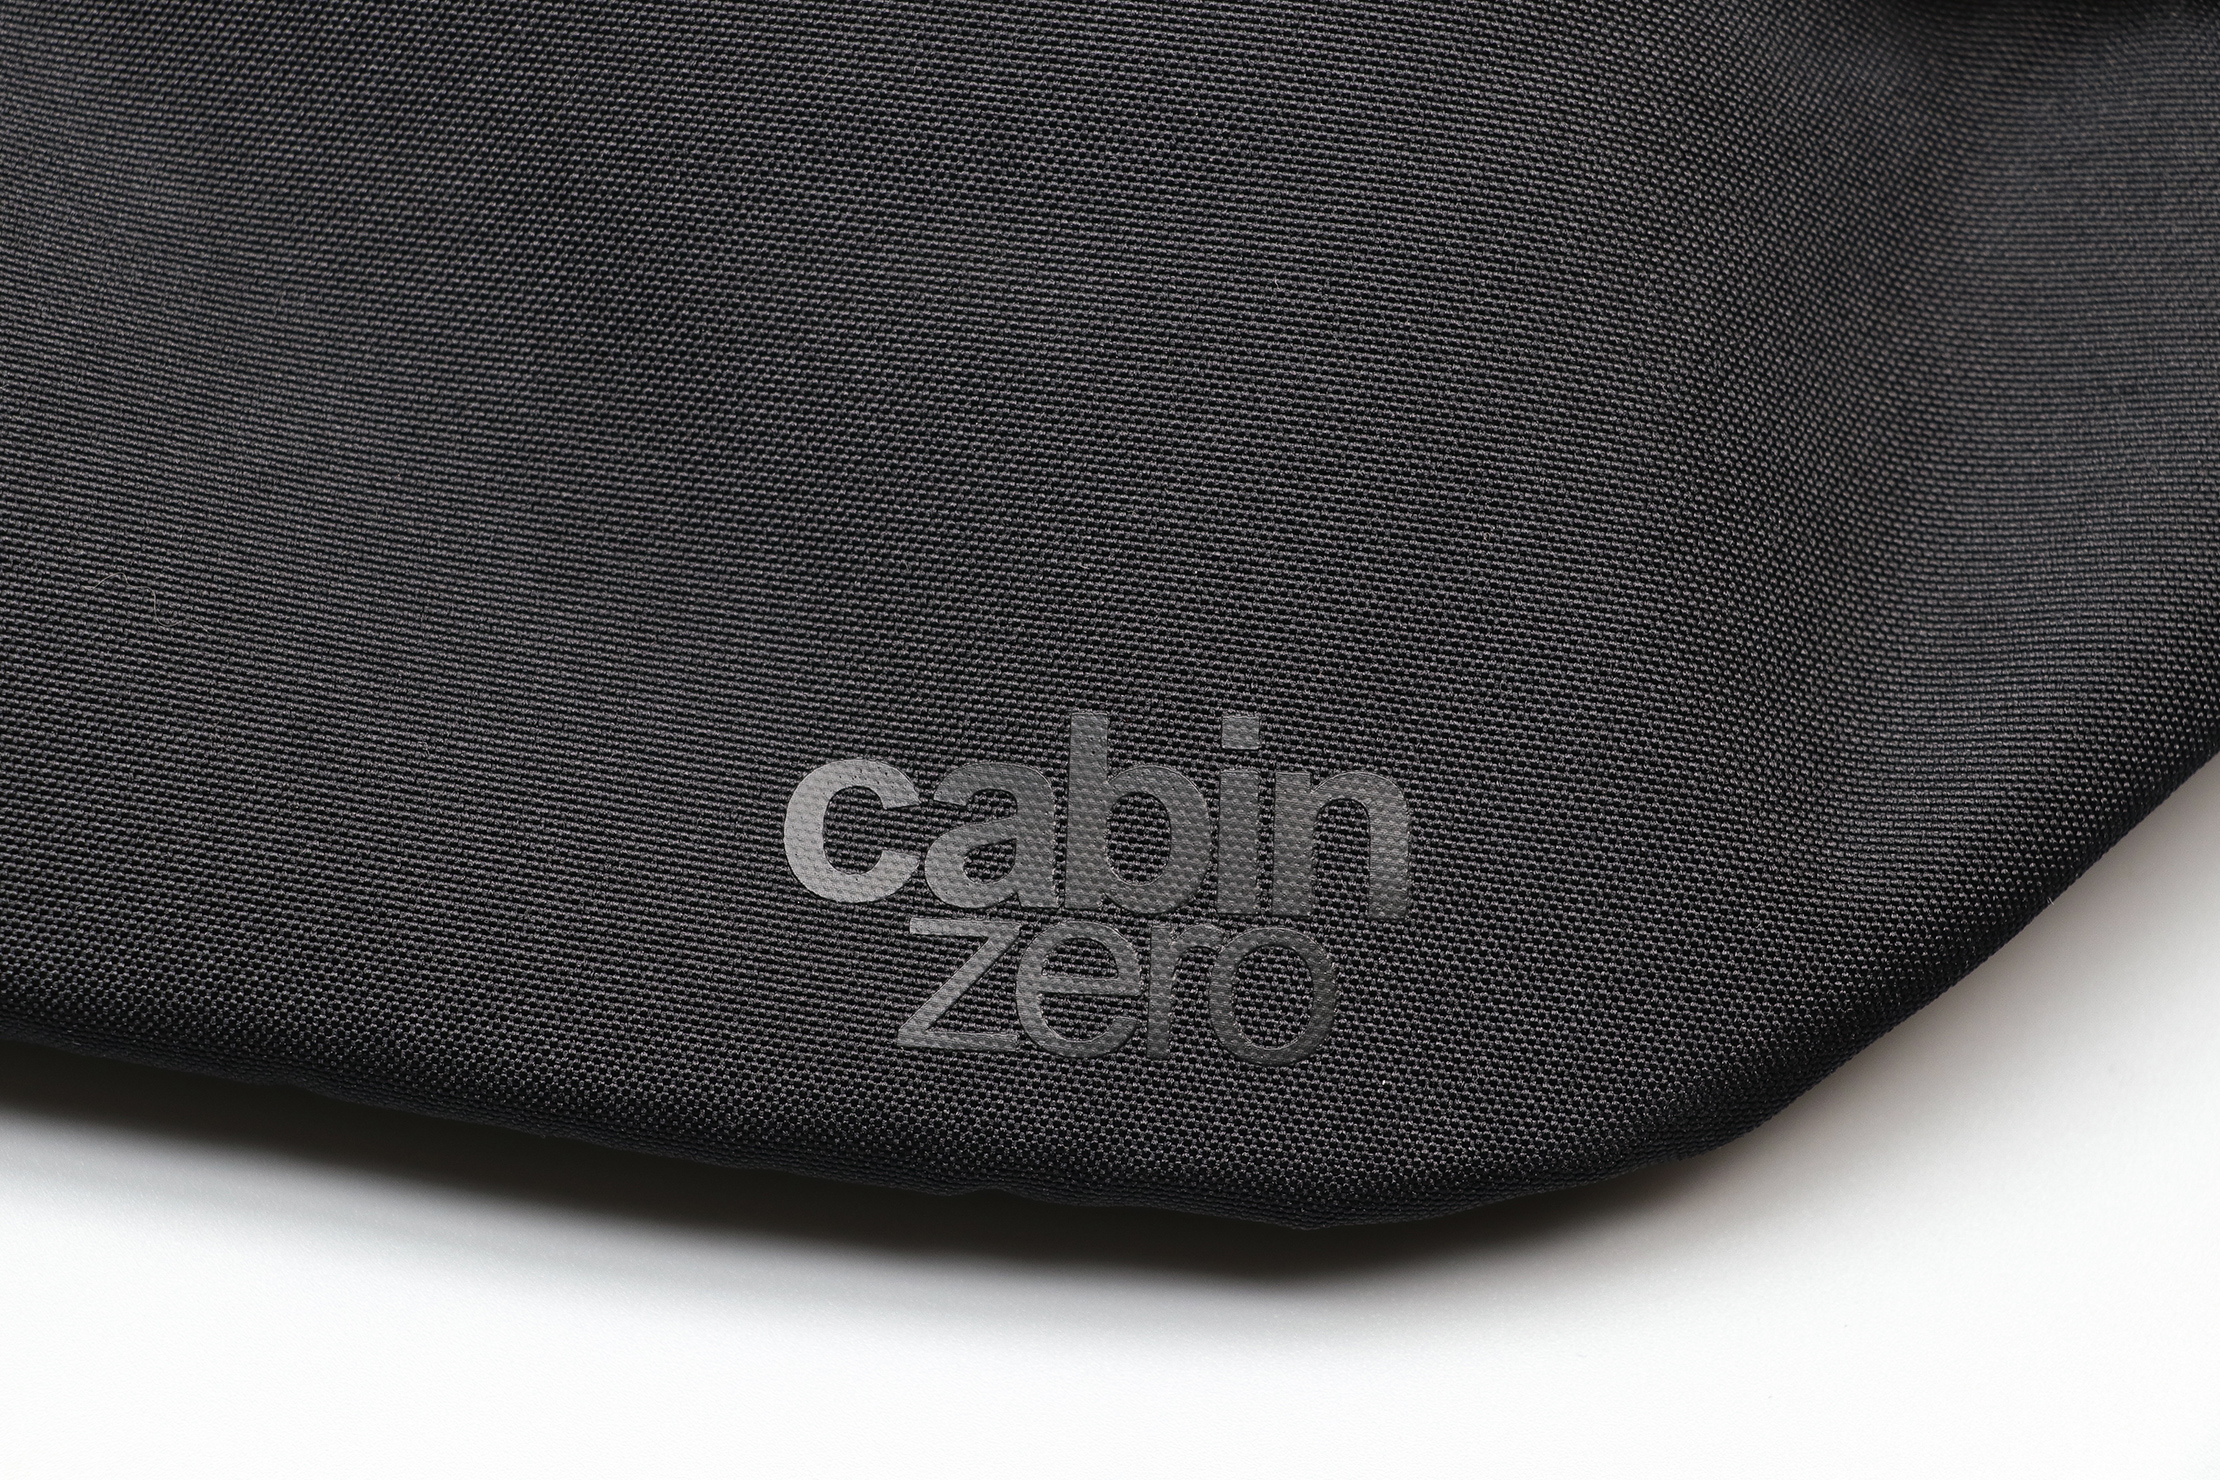 CabinZero Hip Pack 2L Logo & 600D Polyester Material